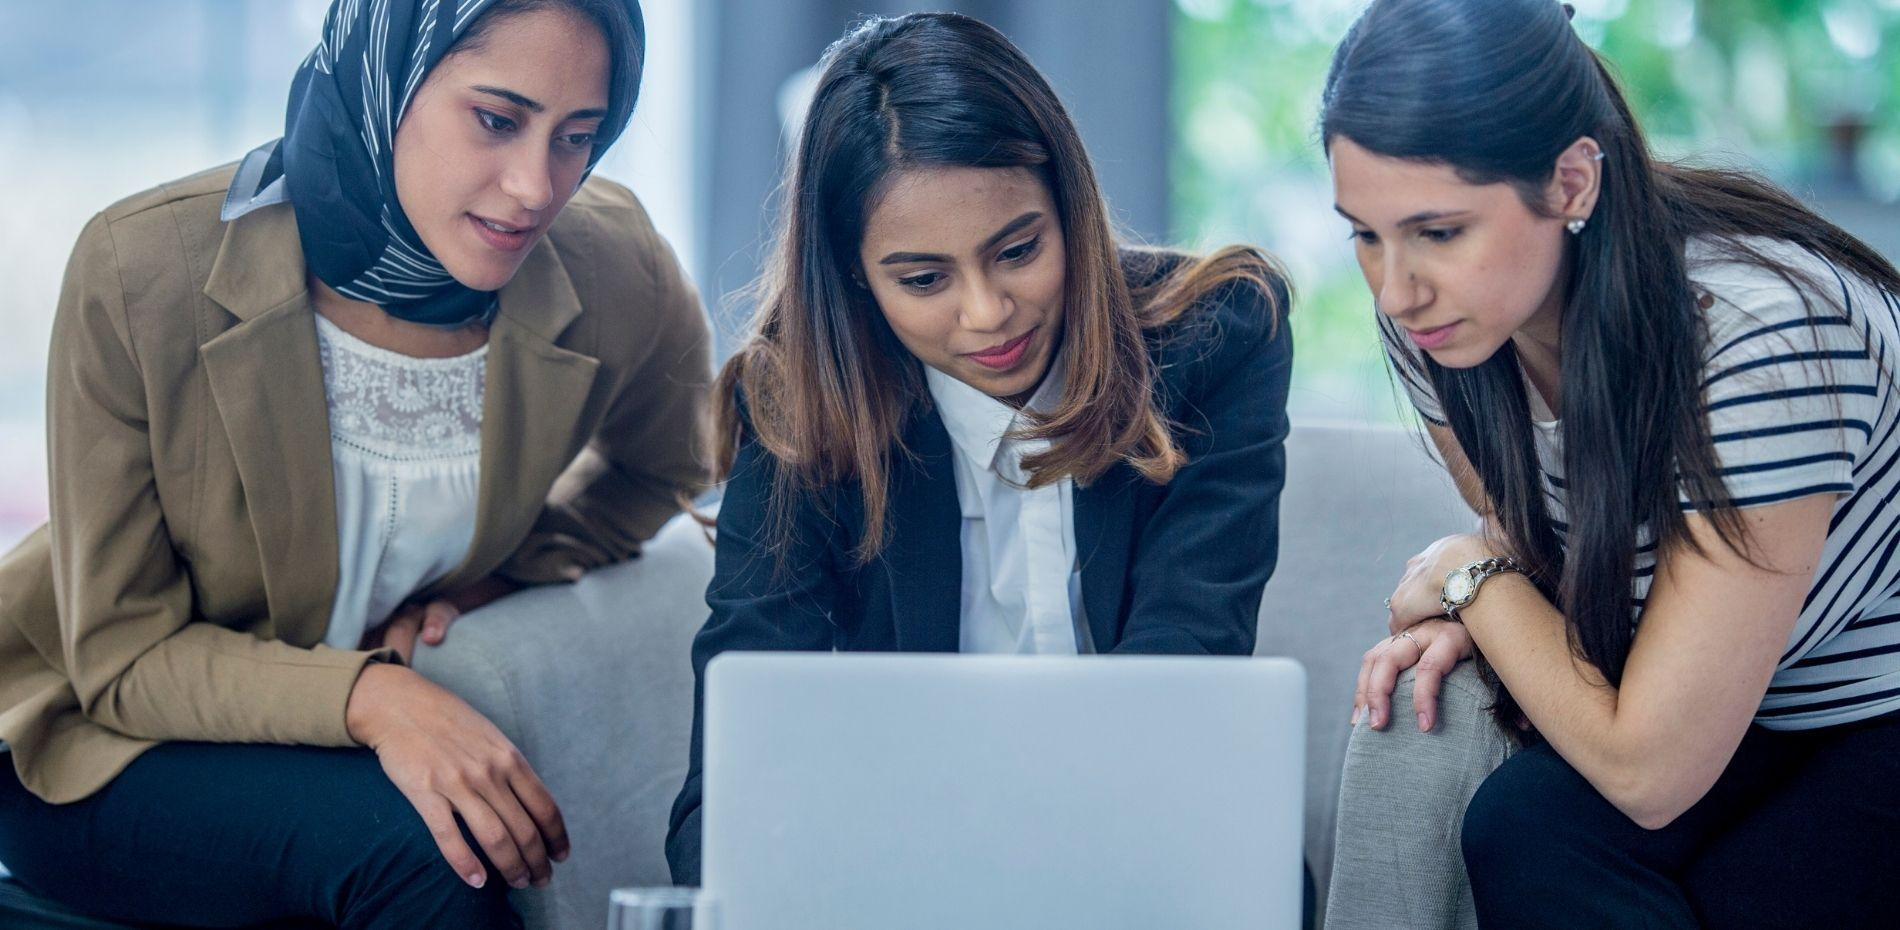 Three women in financial technology sector collaborating over computer screen